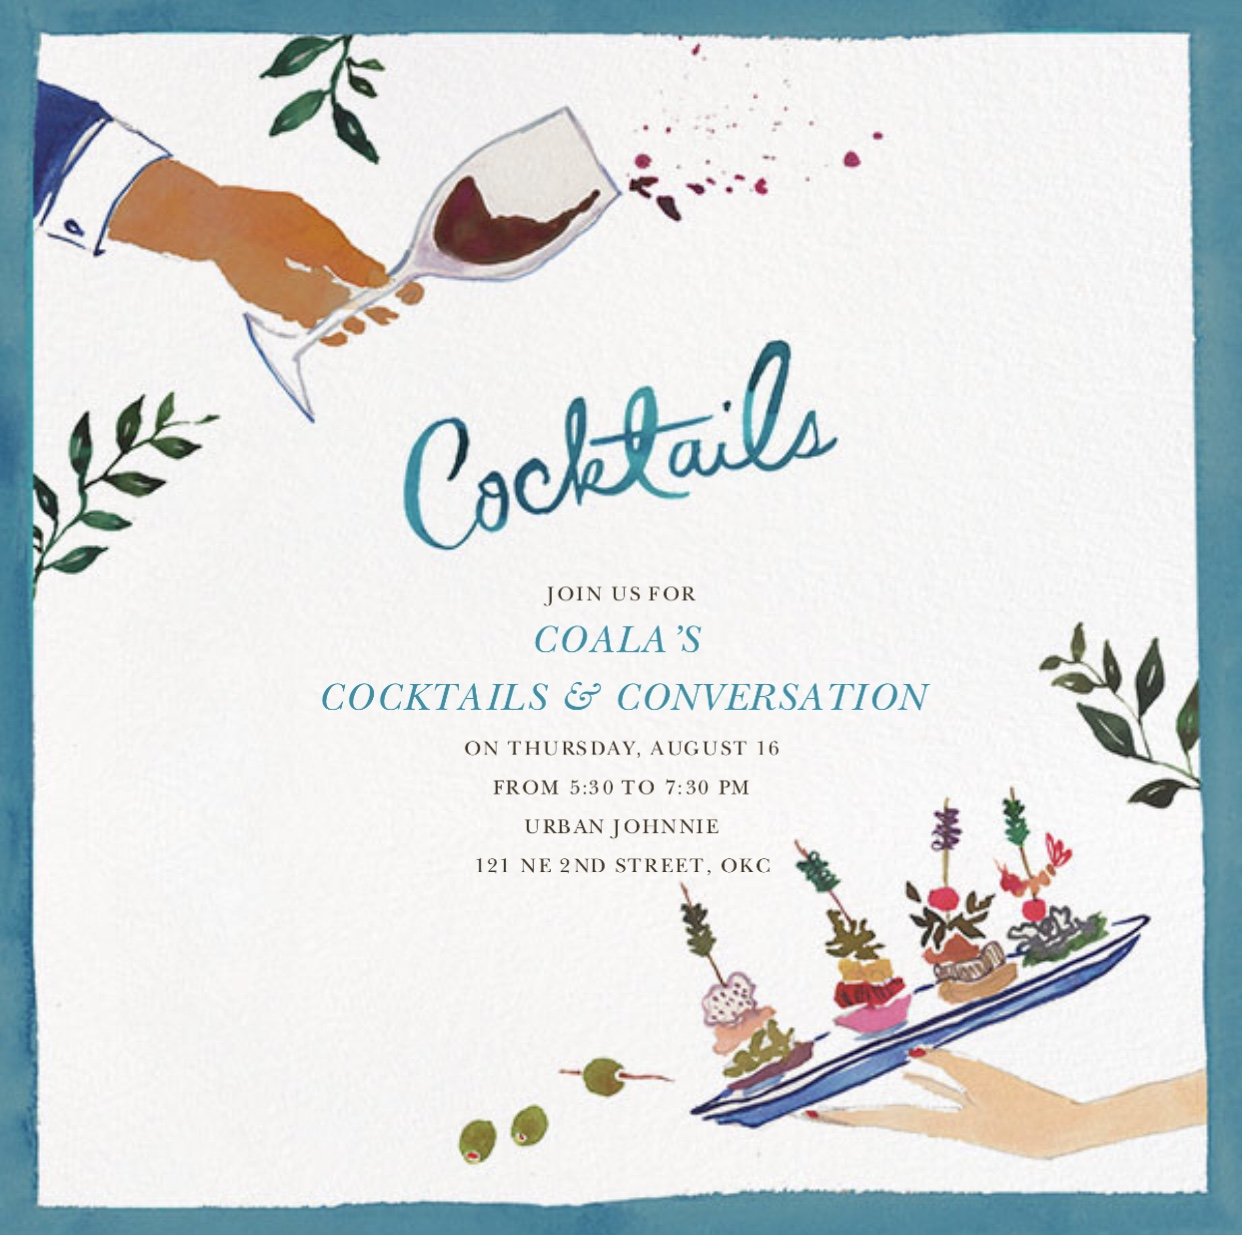 Cocktails & Conversation - Aug 2018.jpg